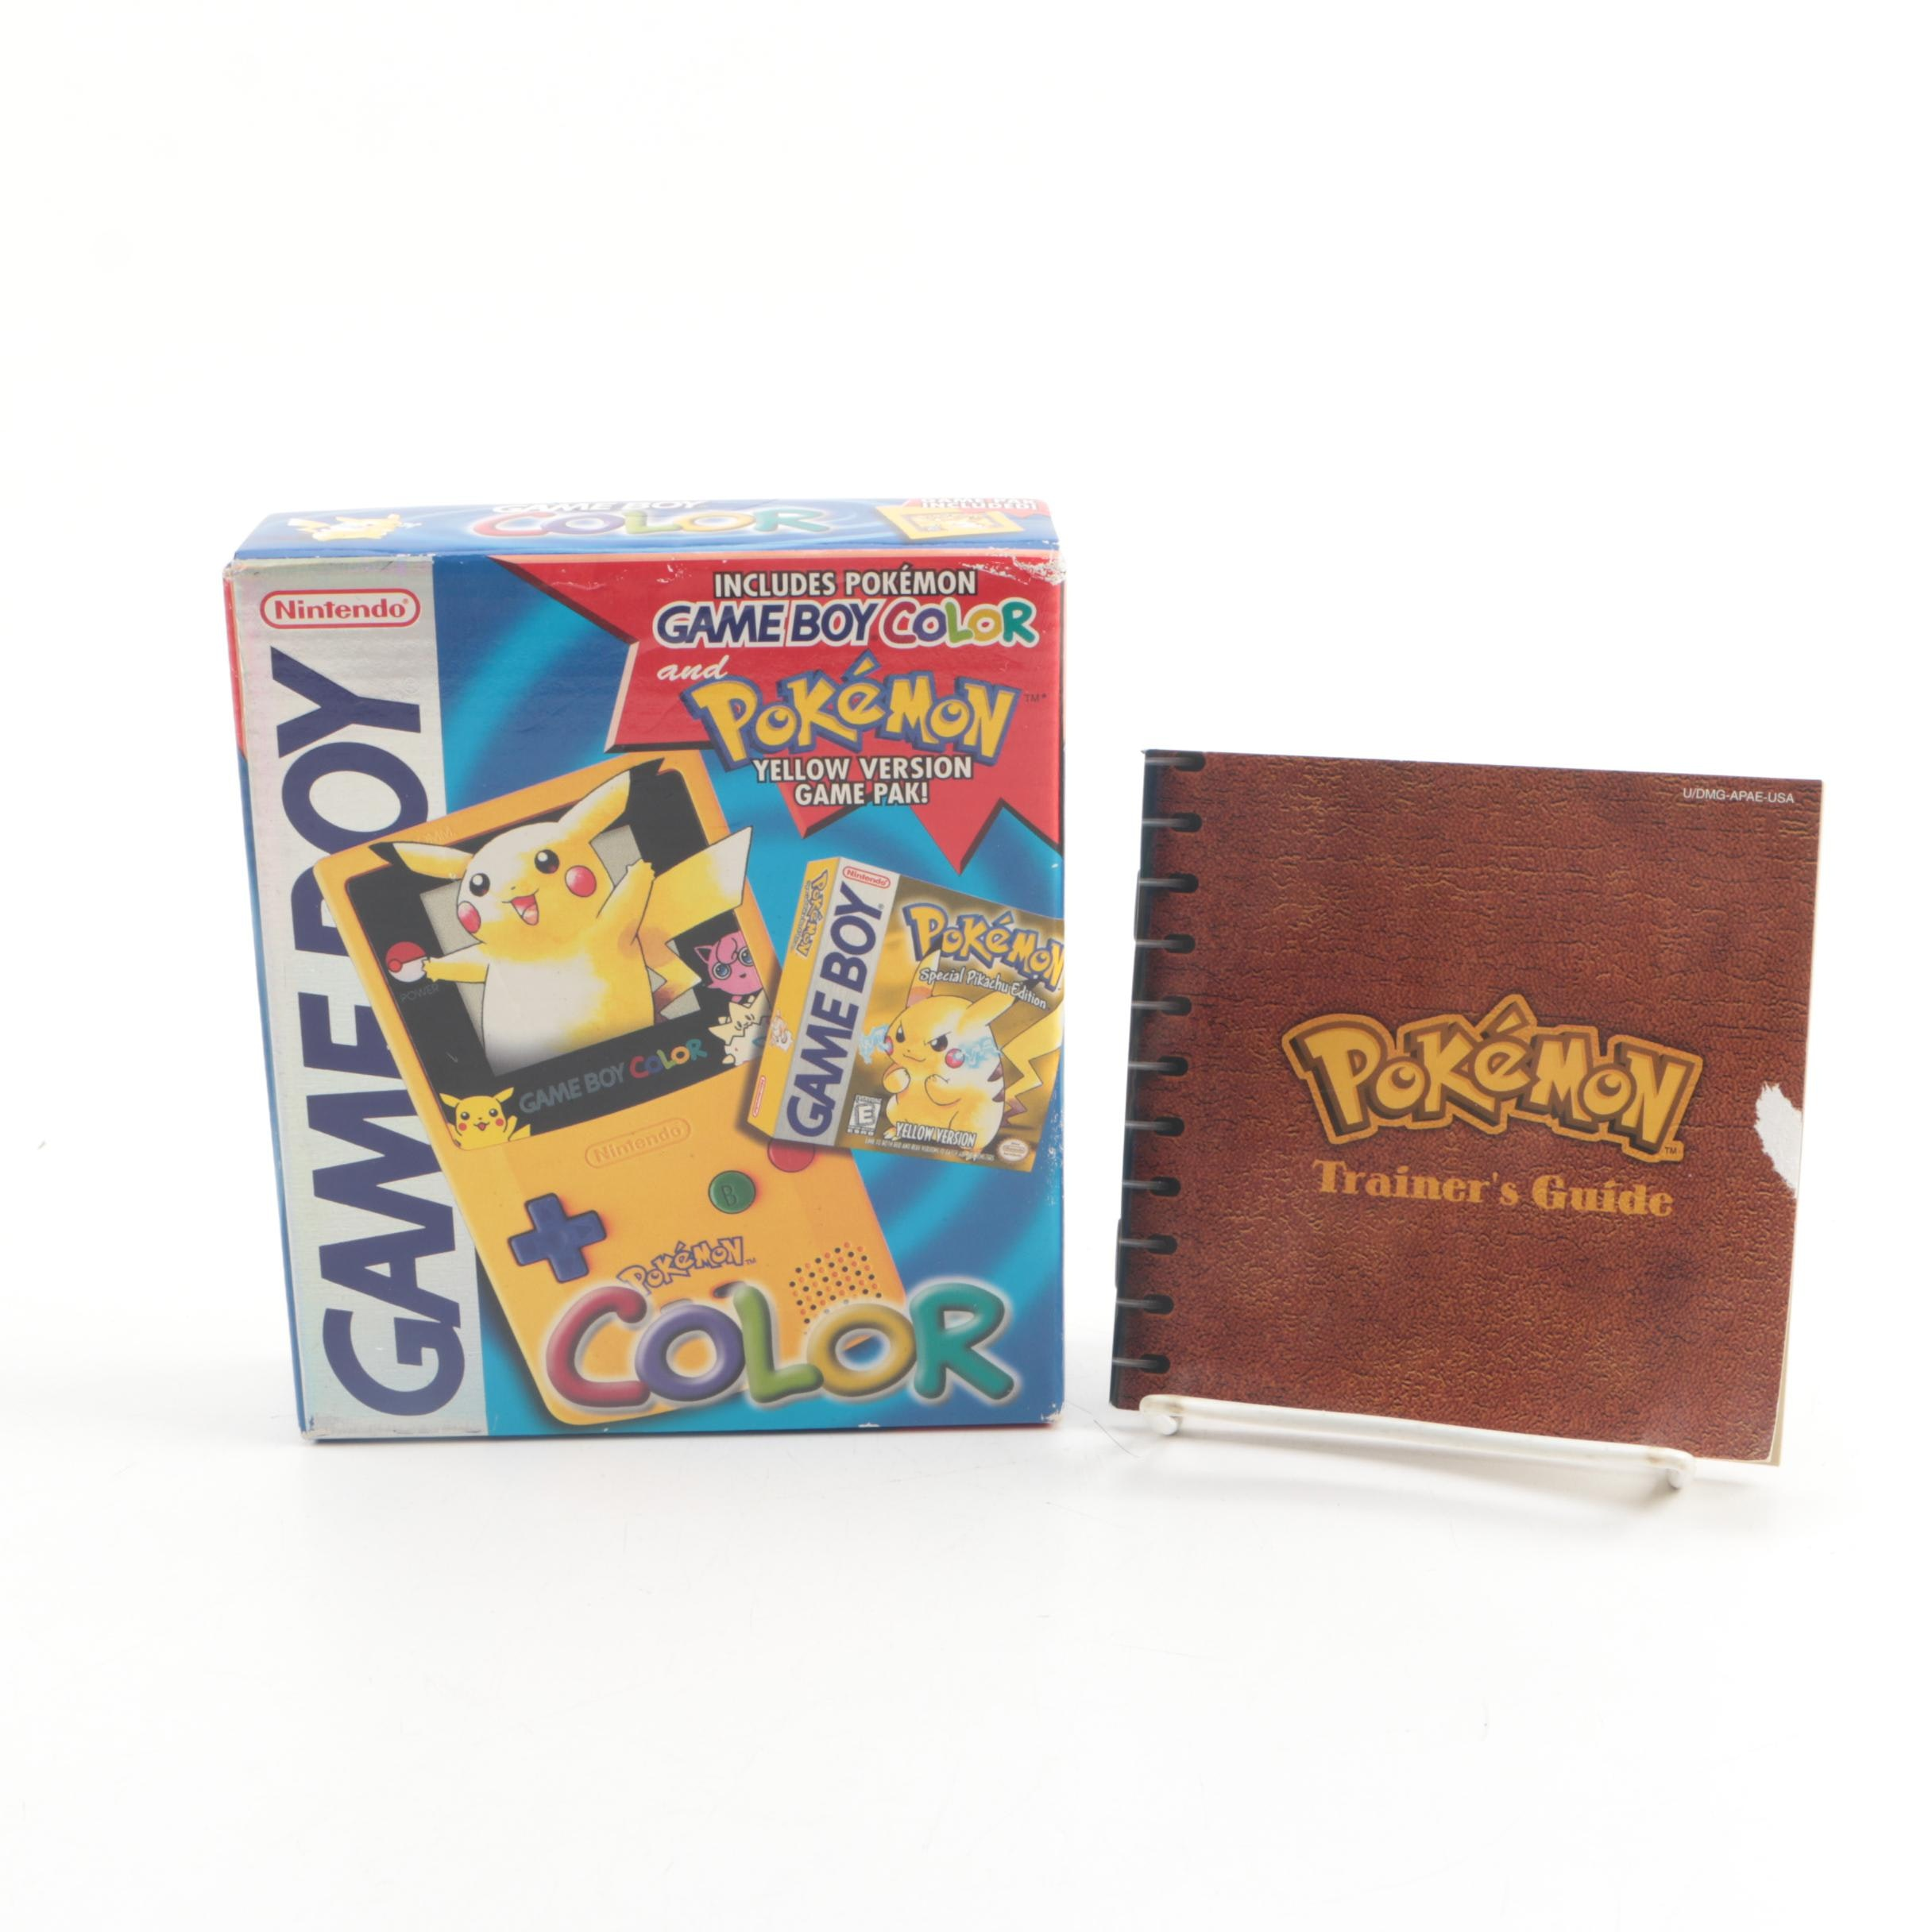 Nintendo Gameboy Color with Pokémon Yellow Version Game